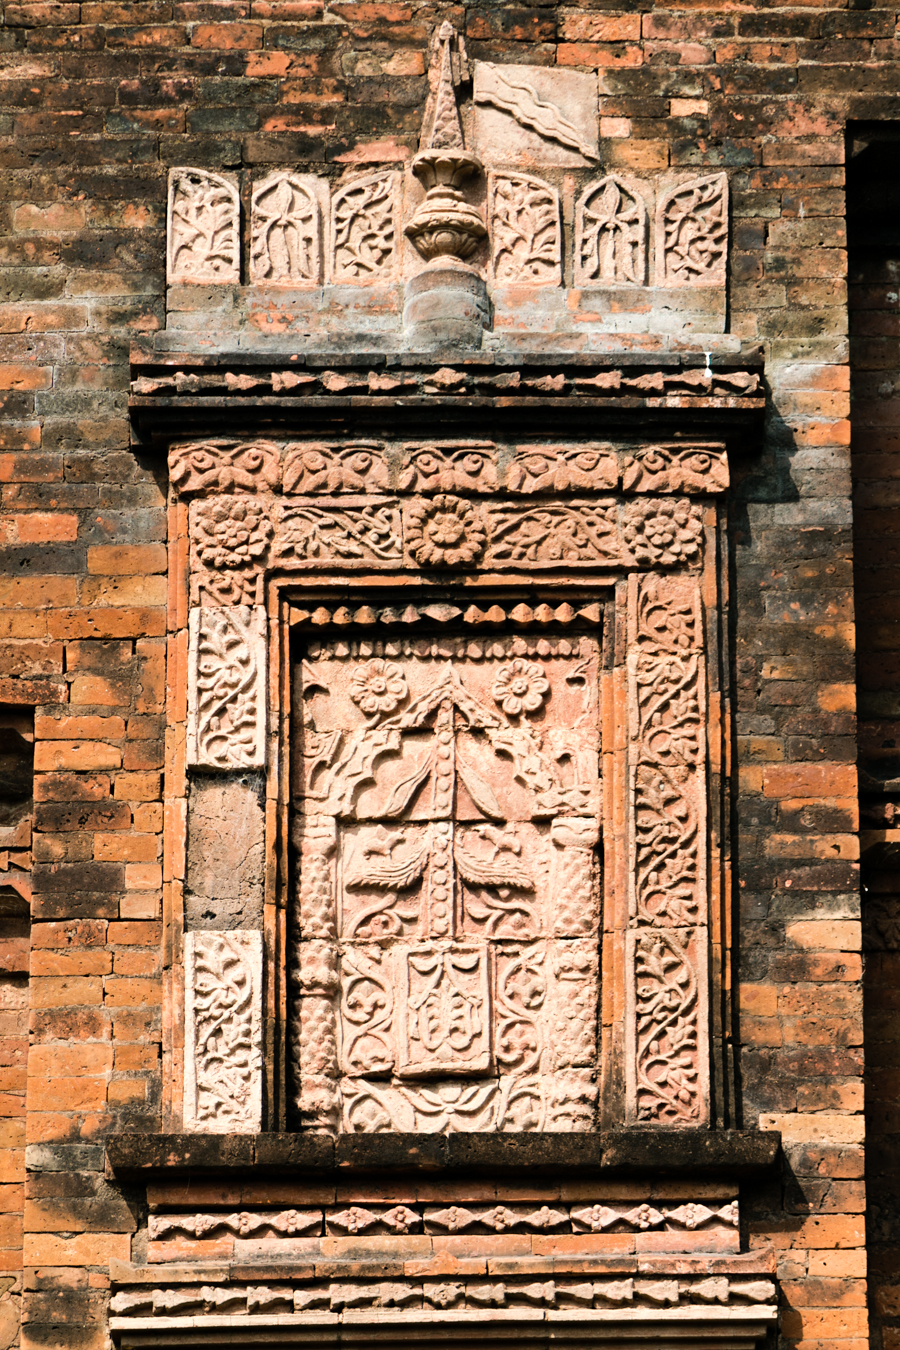 Terracotta design in the exterior wall of Darasbari Mosque, the third largest mosque of Gaur, the ancient capital of Bengal.